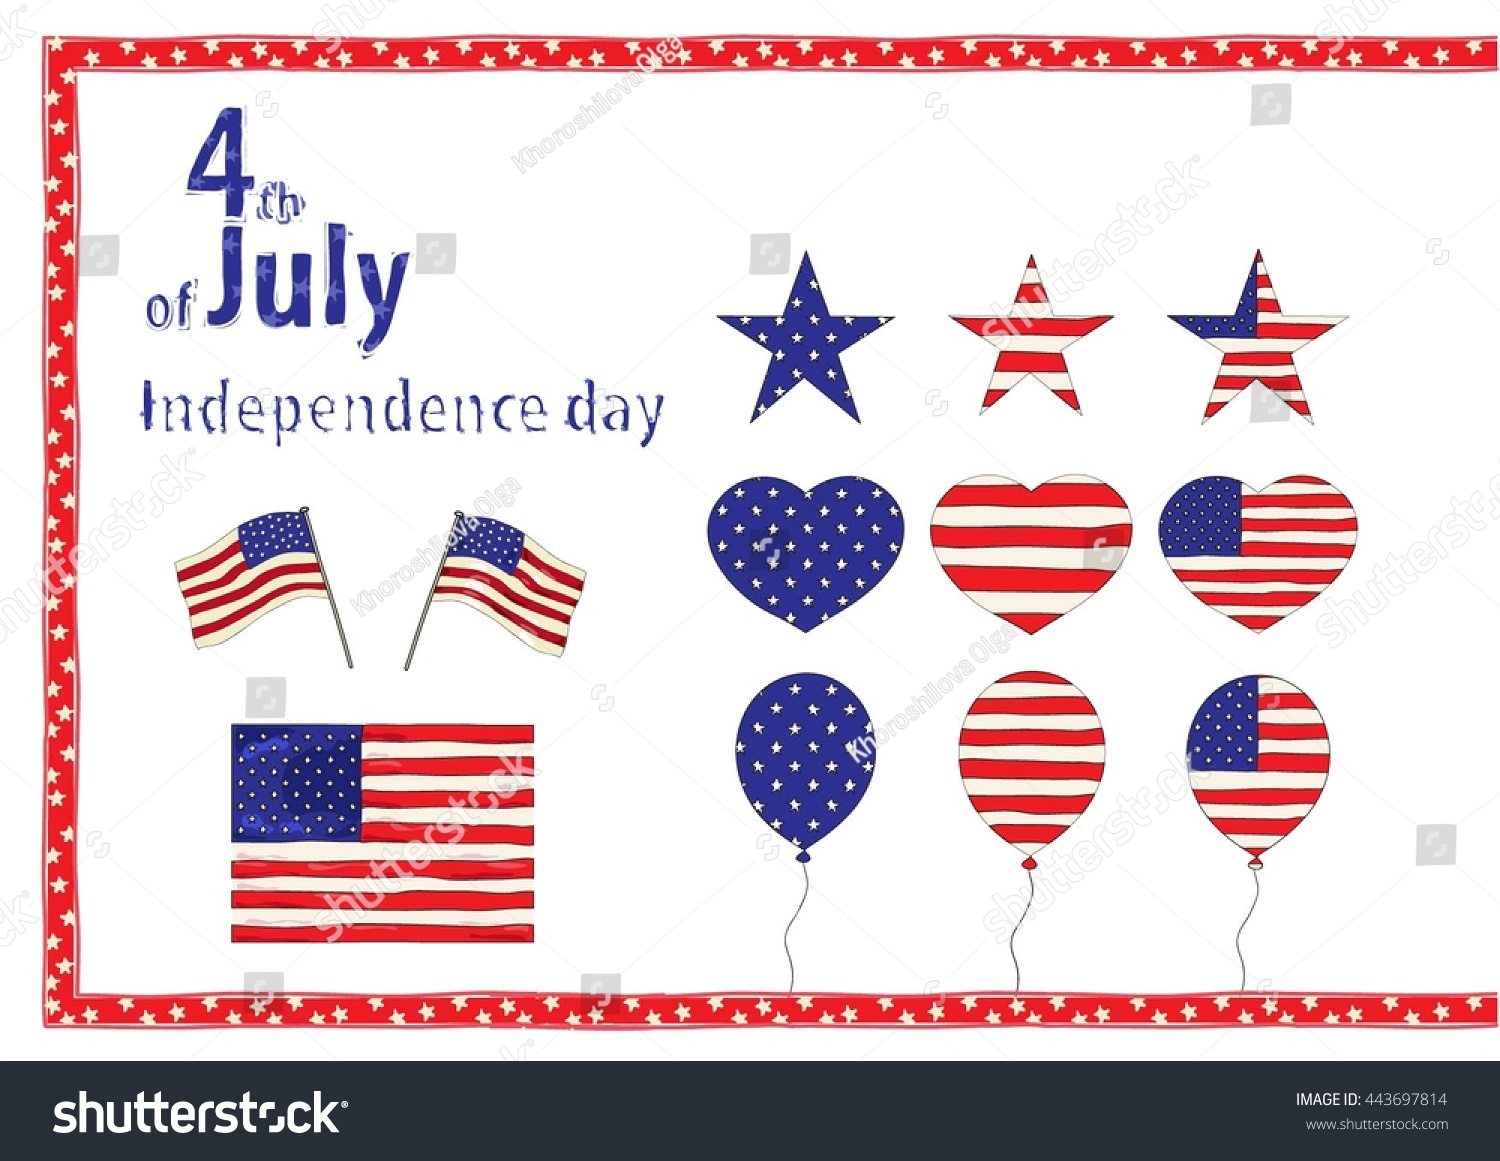 Vector elements independence day usa symbols stock vector vector elements for independence day of the usa symbols of the usa independence day and biocorpaavc